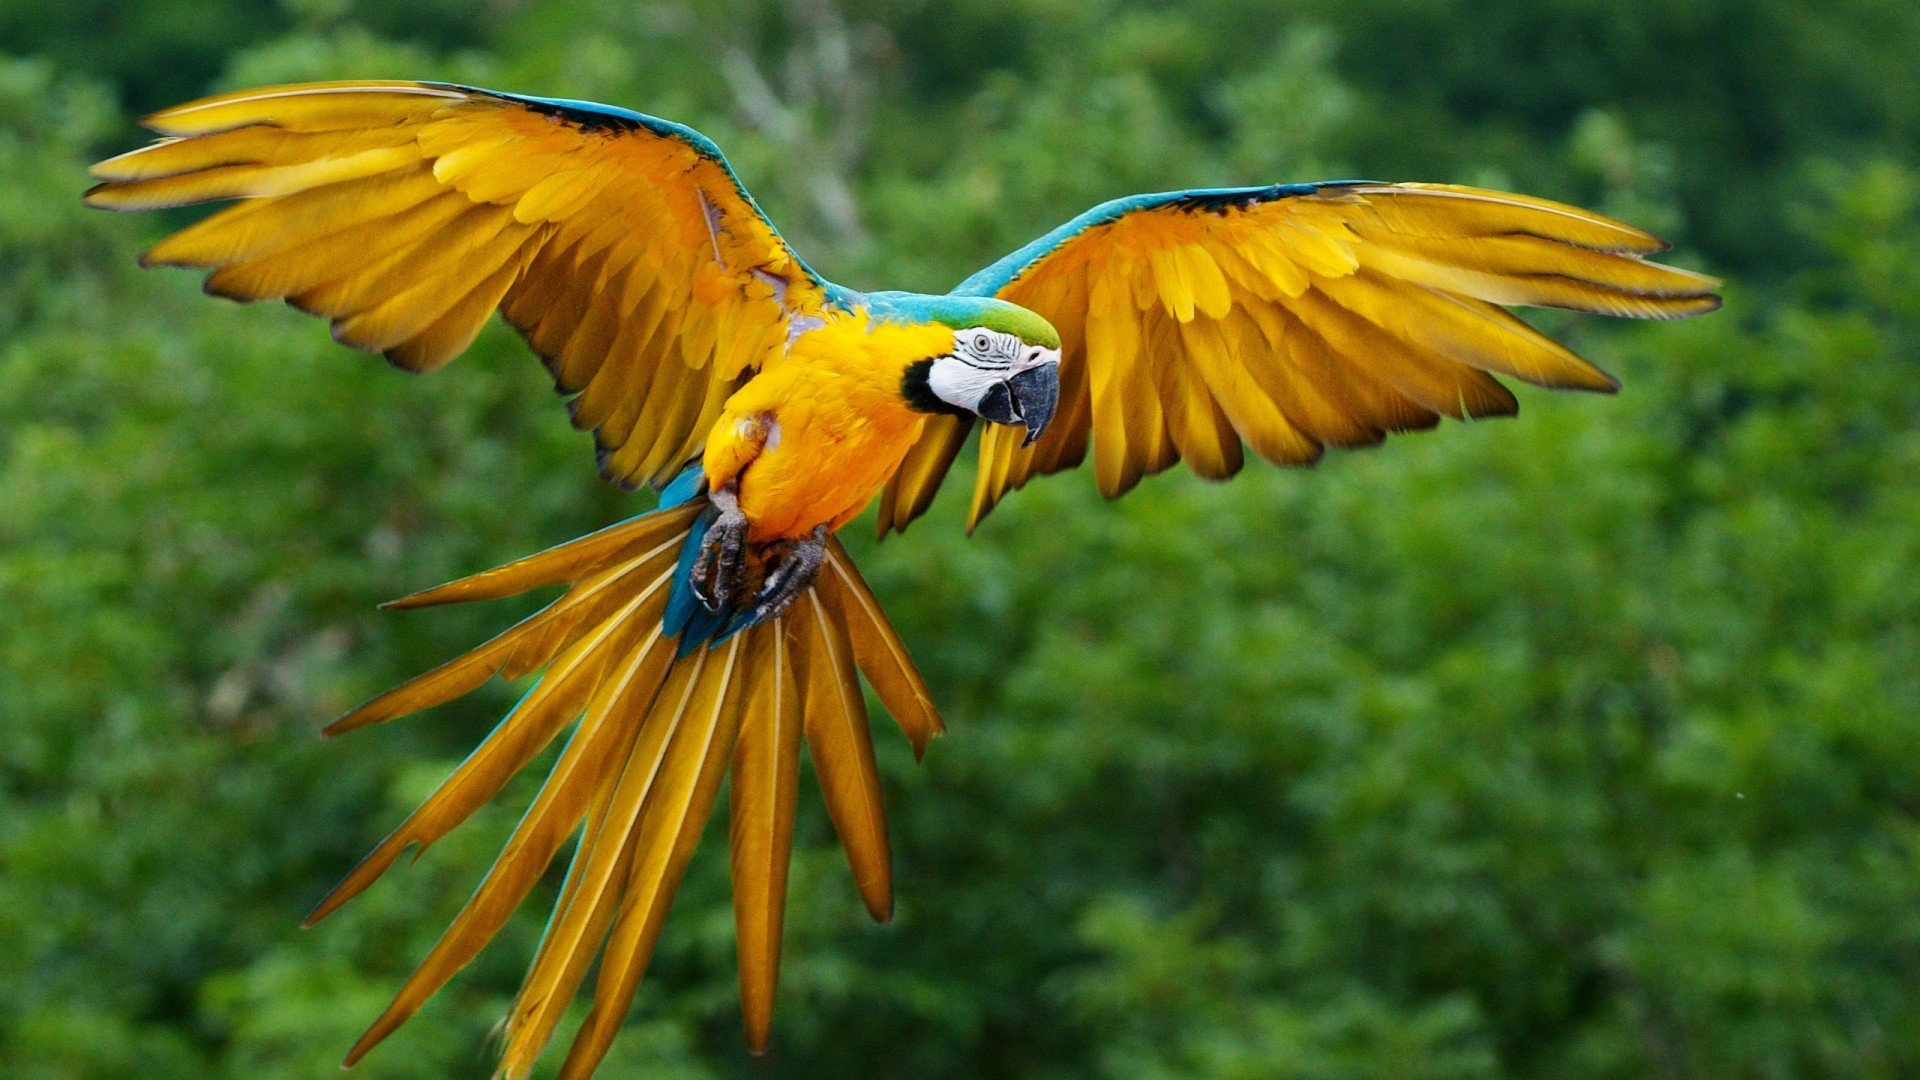 Download hd 1920x1080 Macaw PC wallpaper ID:46464 for free